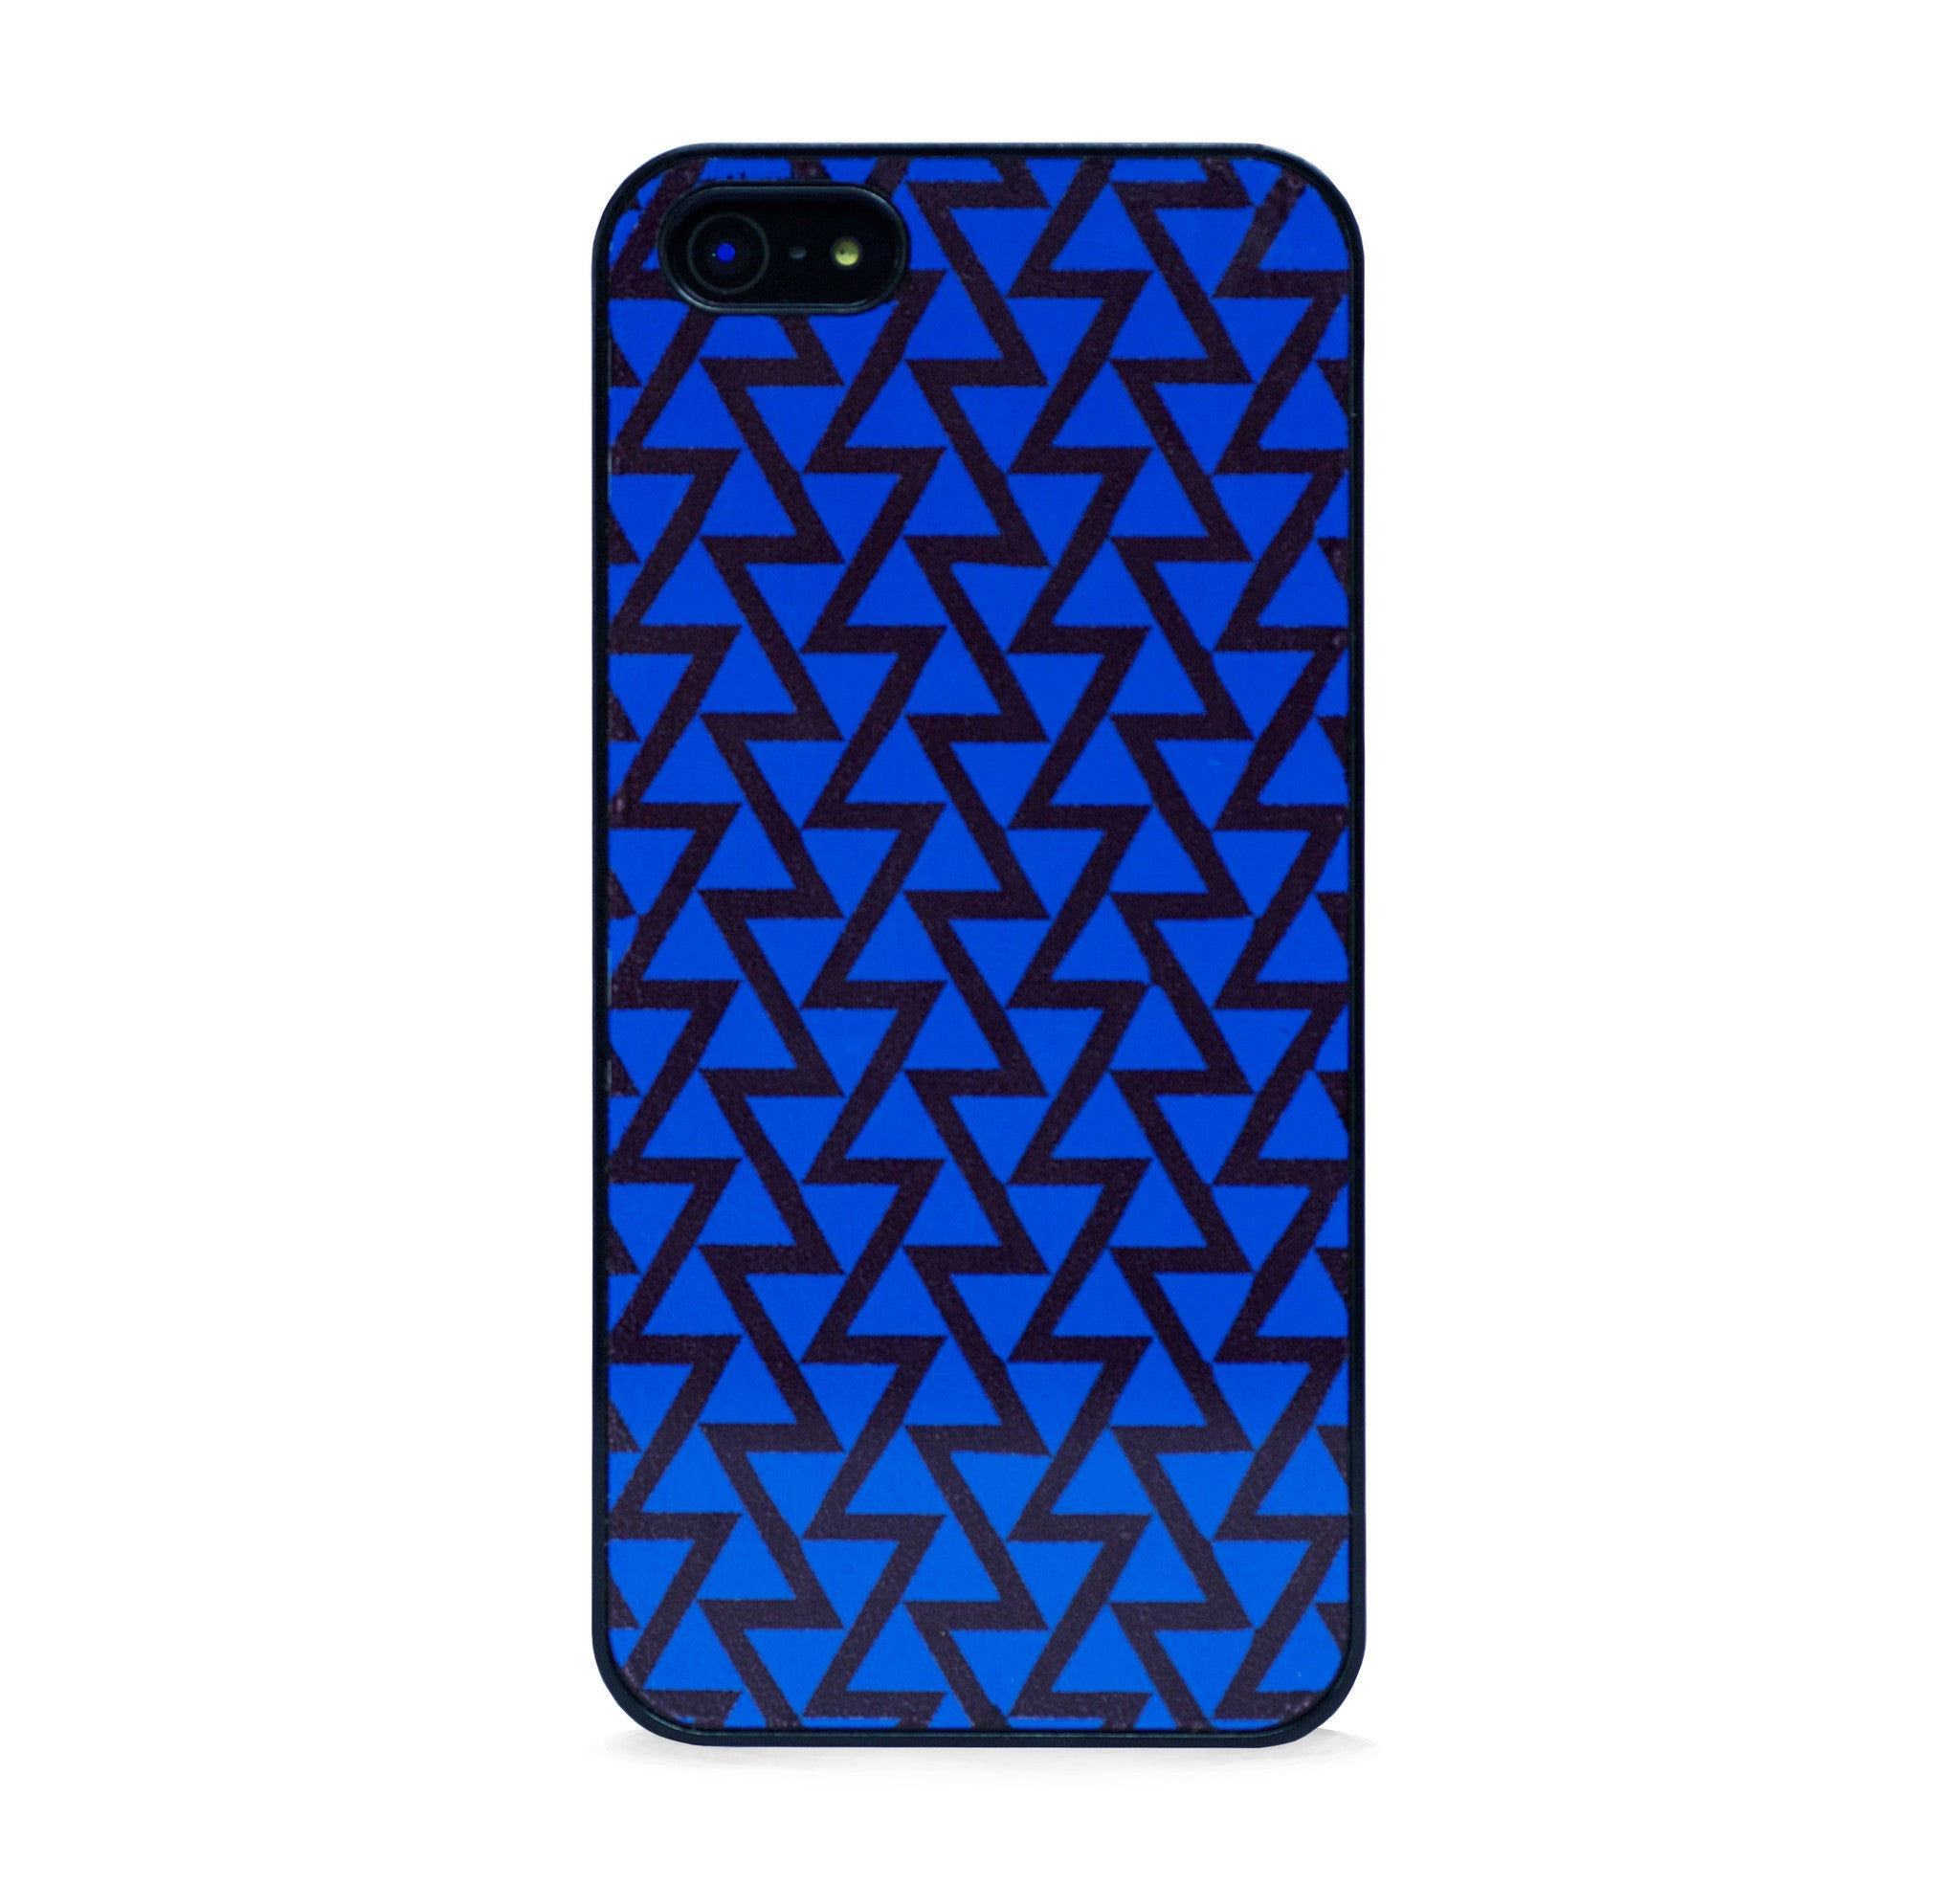 GEO TRIANGLE BLUE FOR IPHONE 5/5S, IPHONE SE